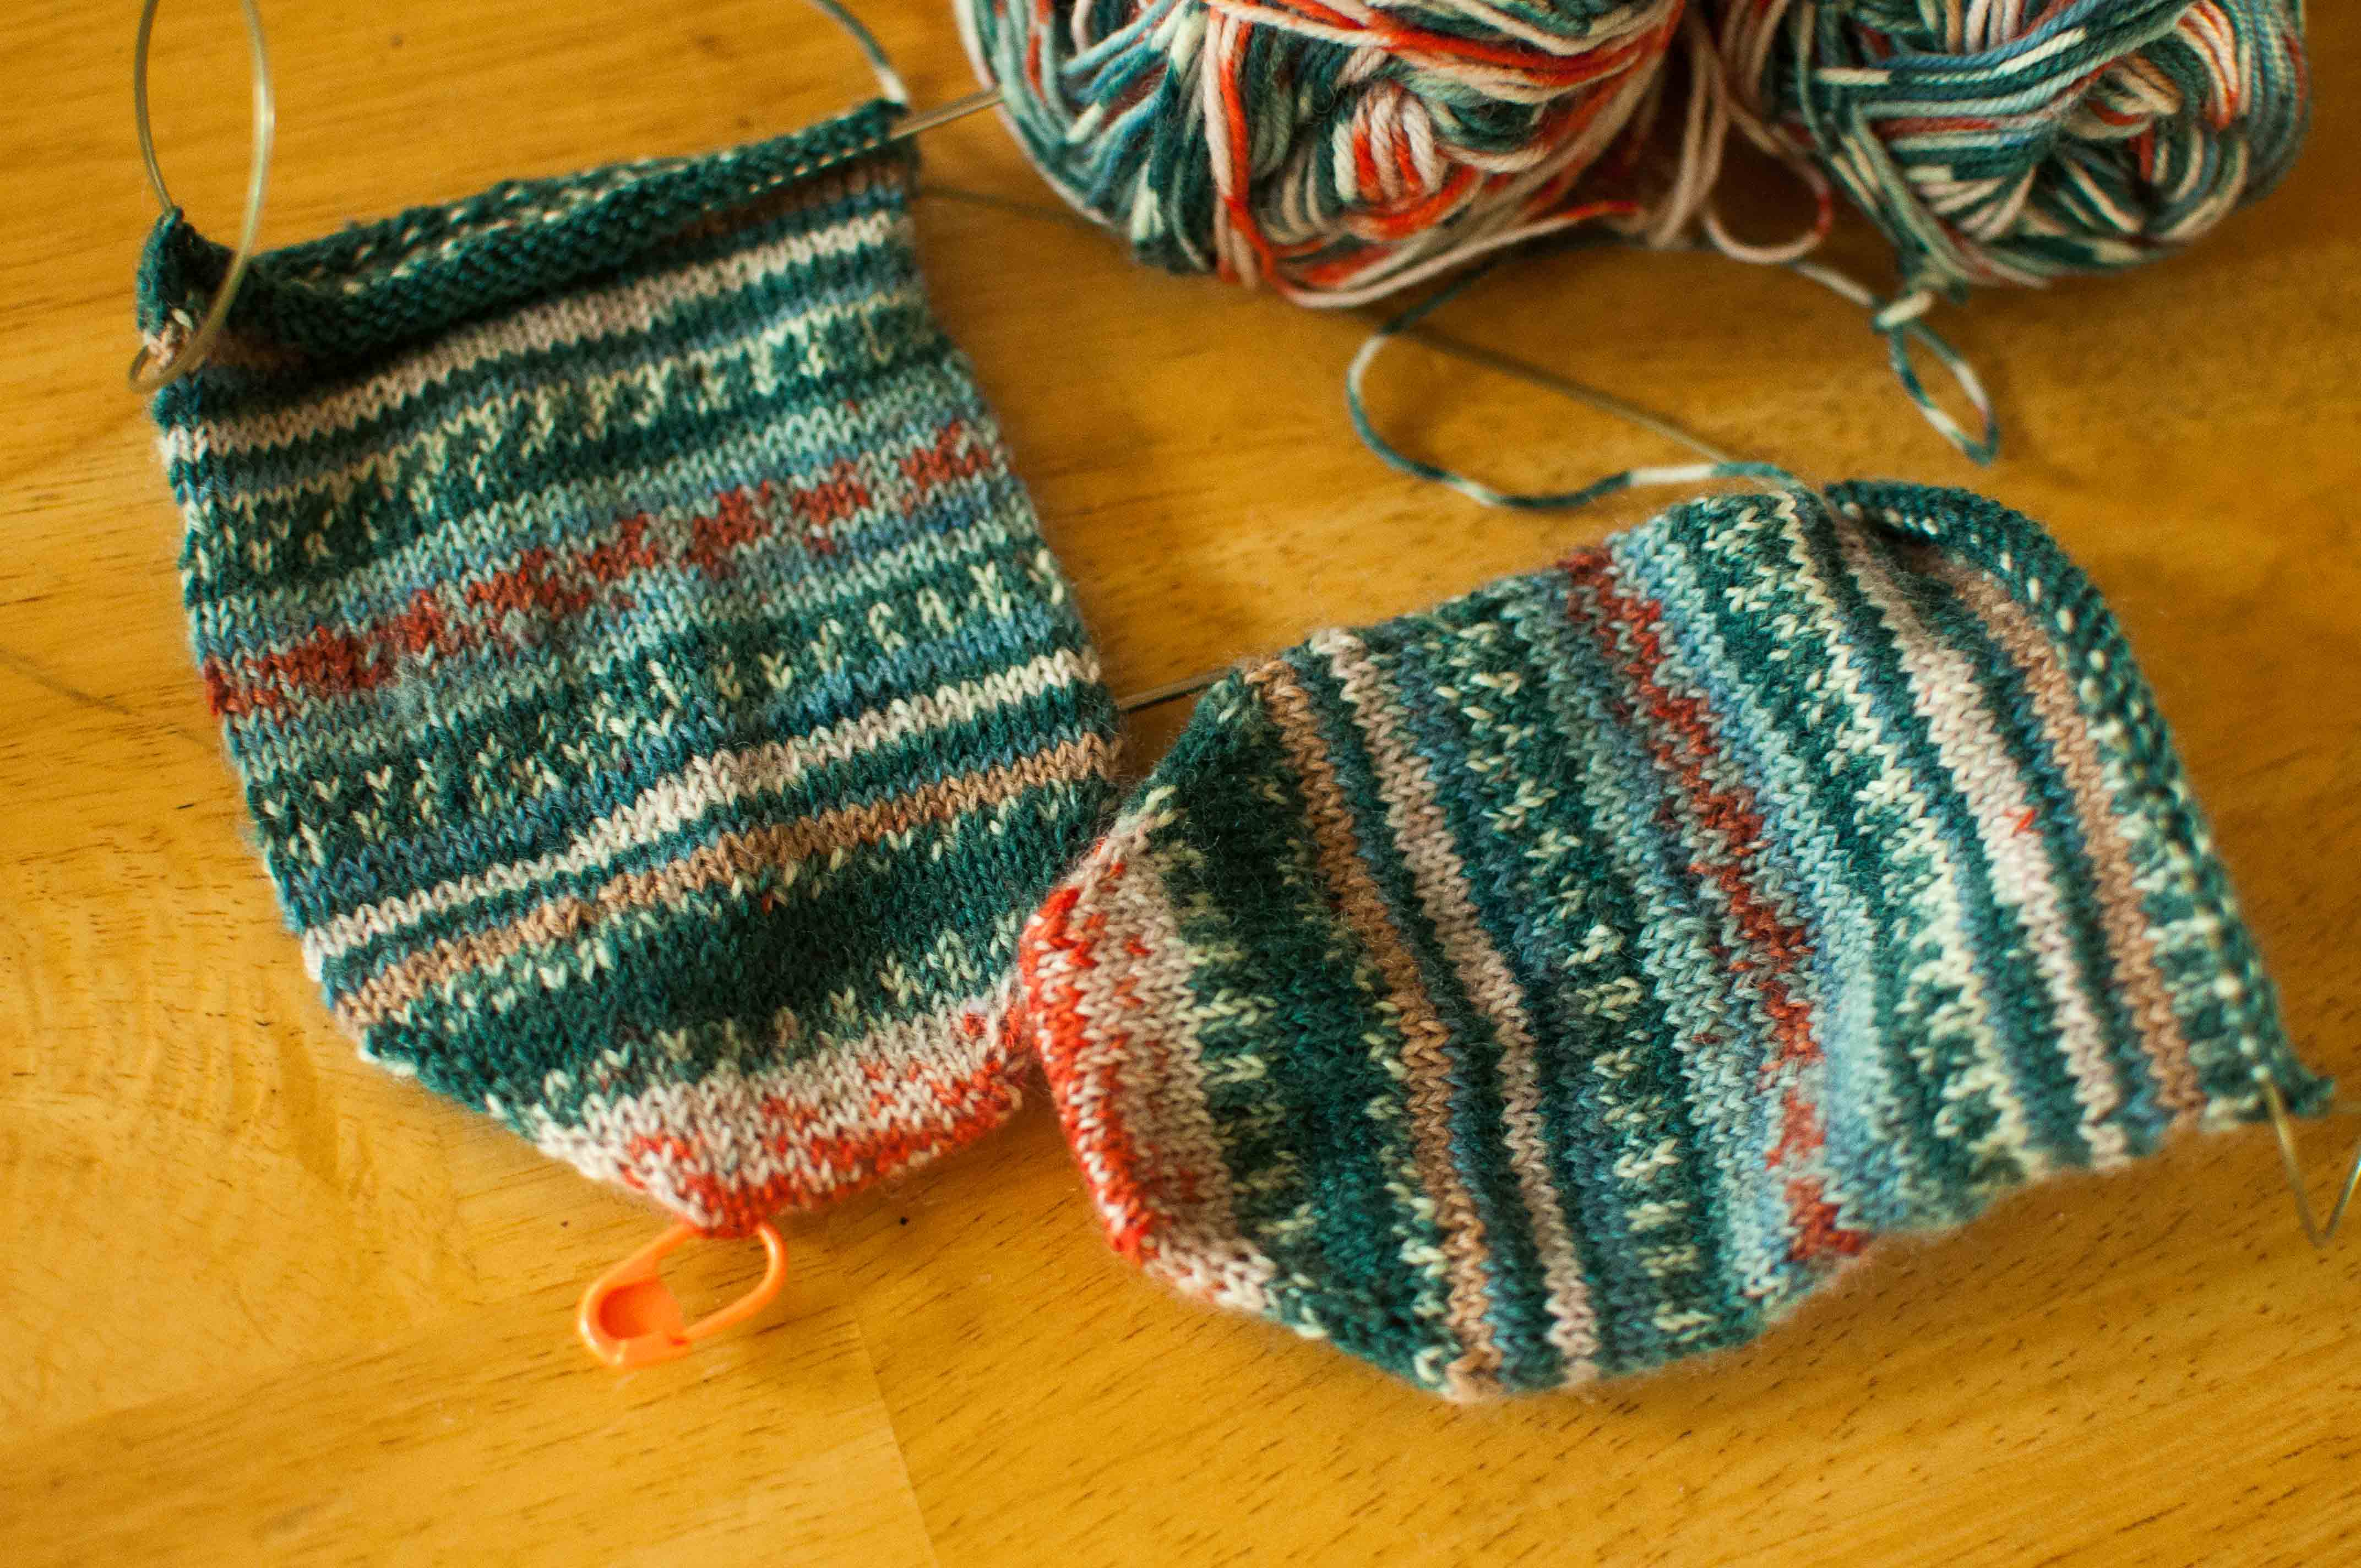 Sock Knitting Yarn The Information You Need To Know